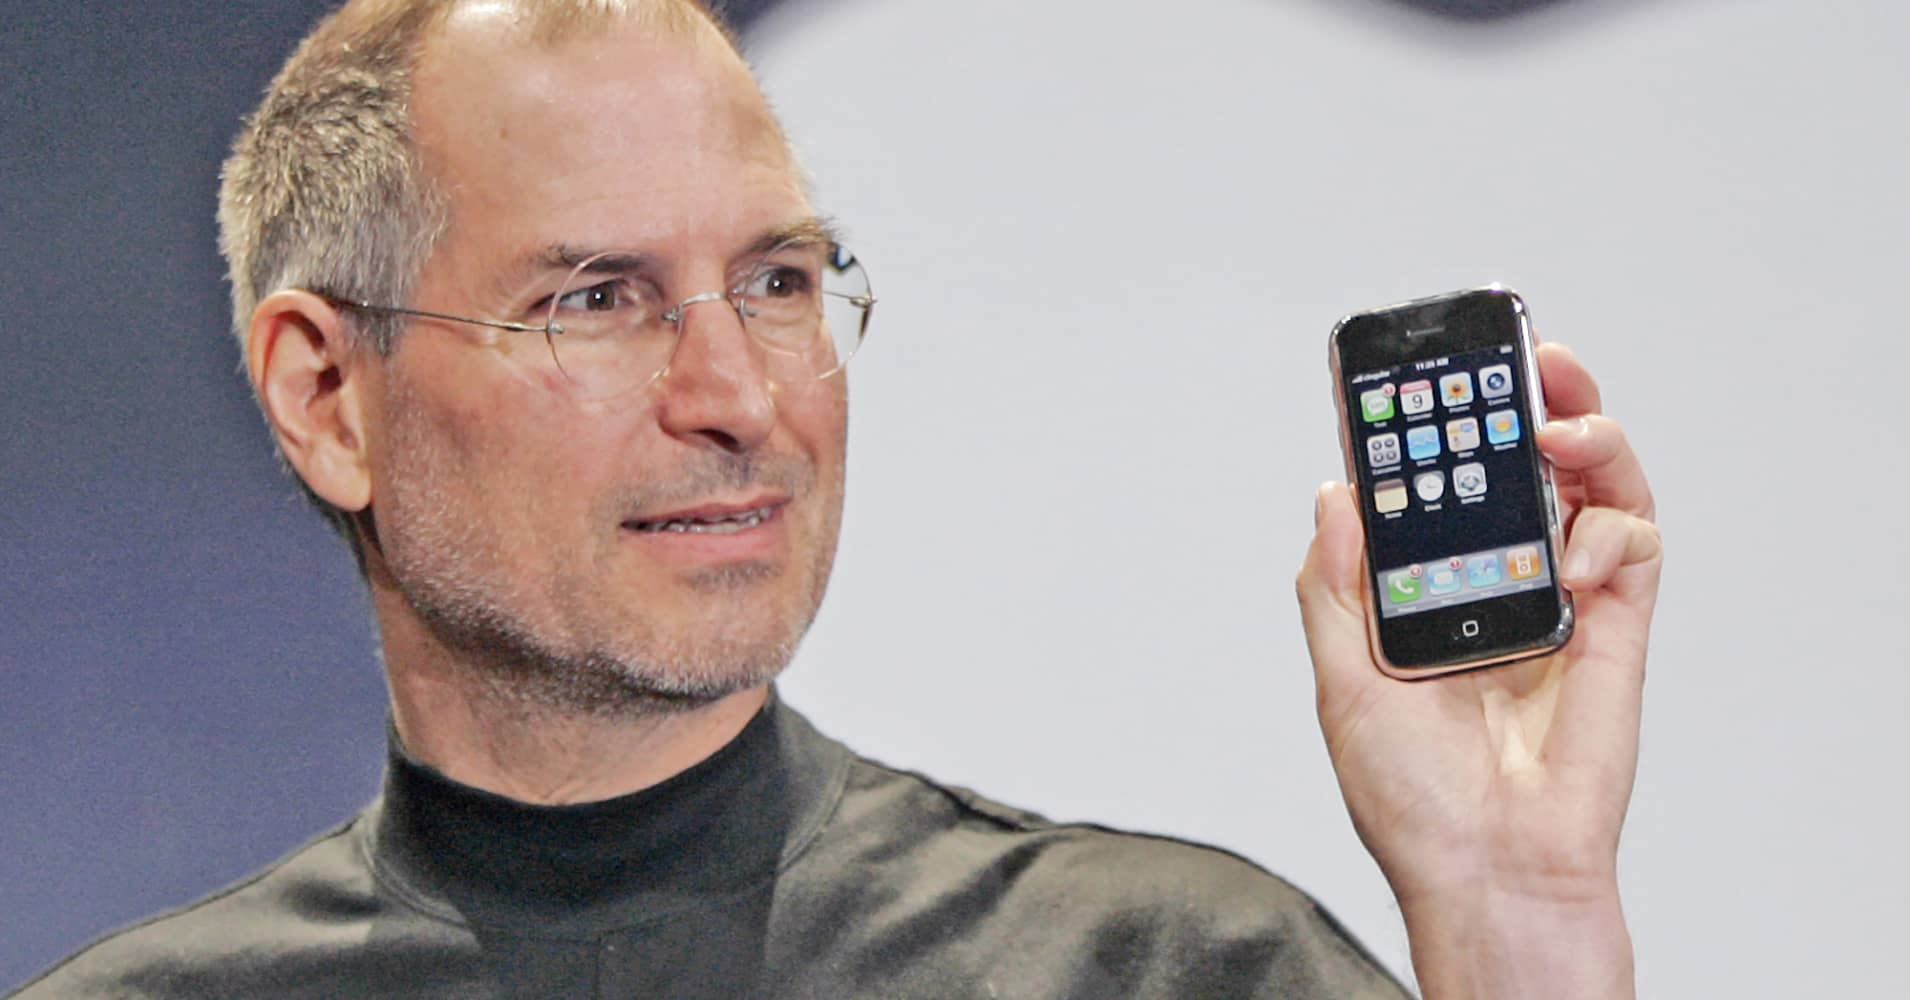 Apples IPhone Turns 10 Heres A Look At The Smartphone Through Decade